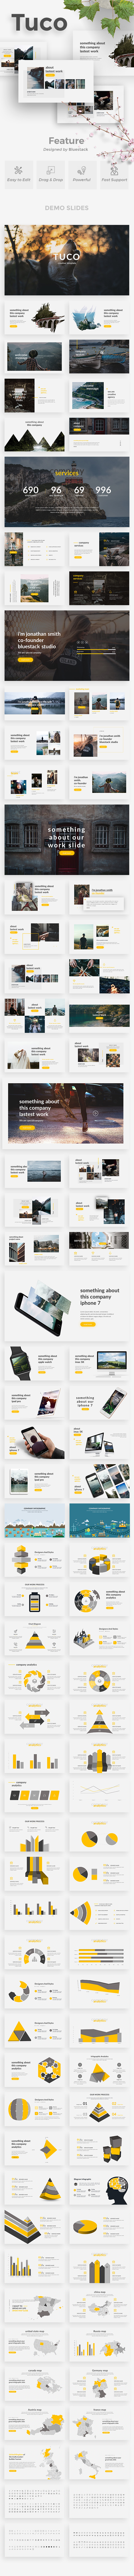 Tuco Creative Keynote Template - Creative Keynote Templates